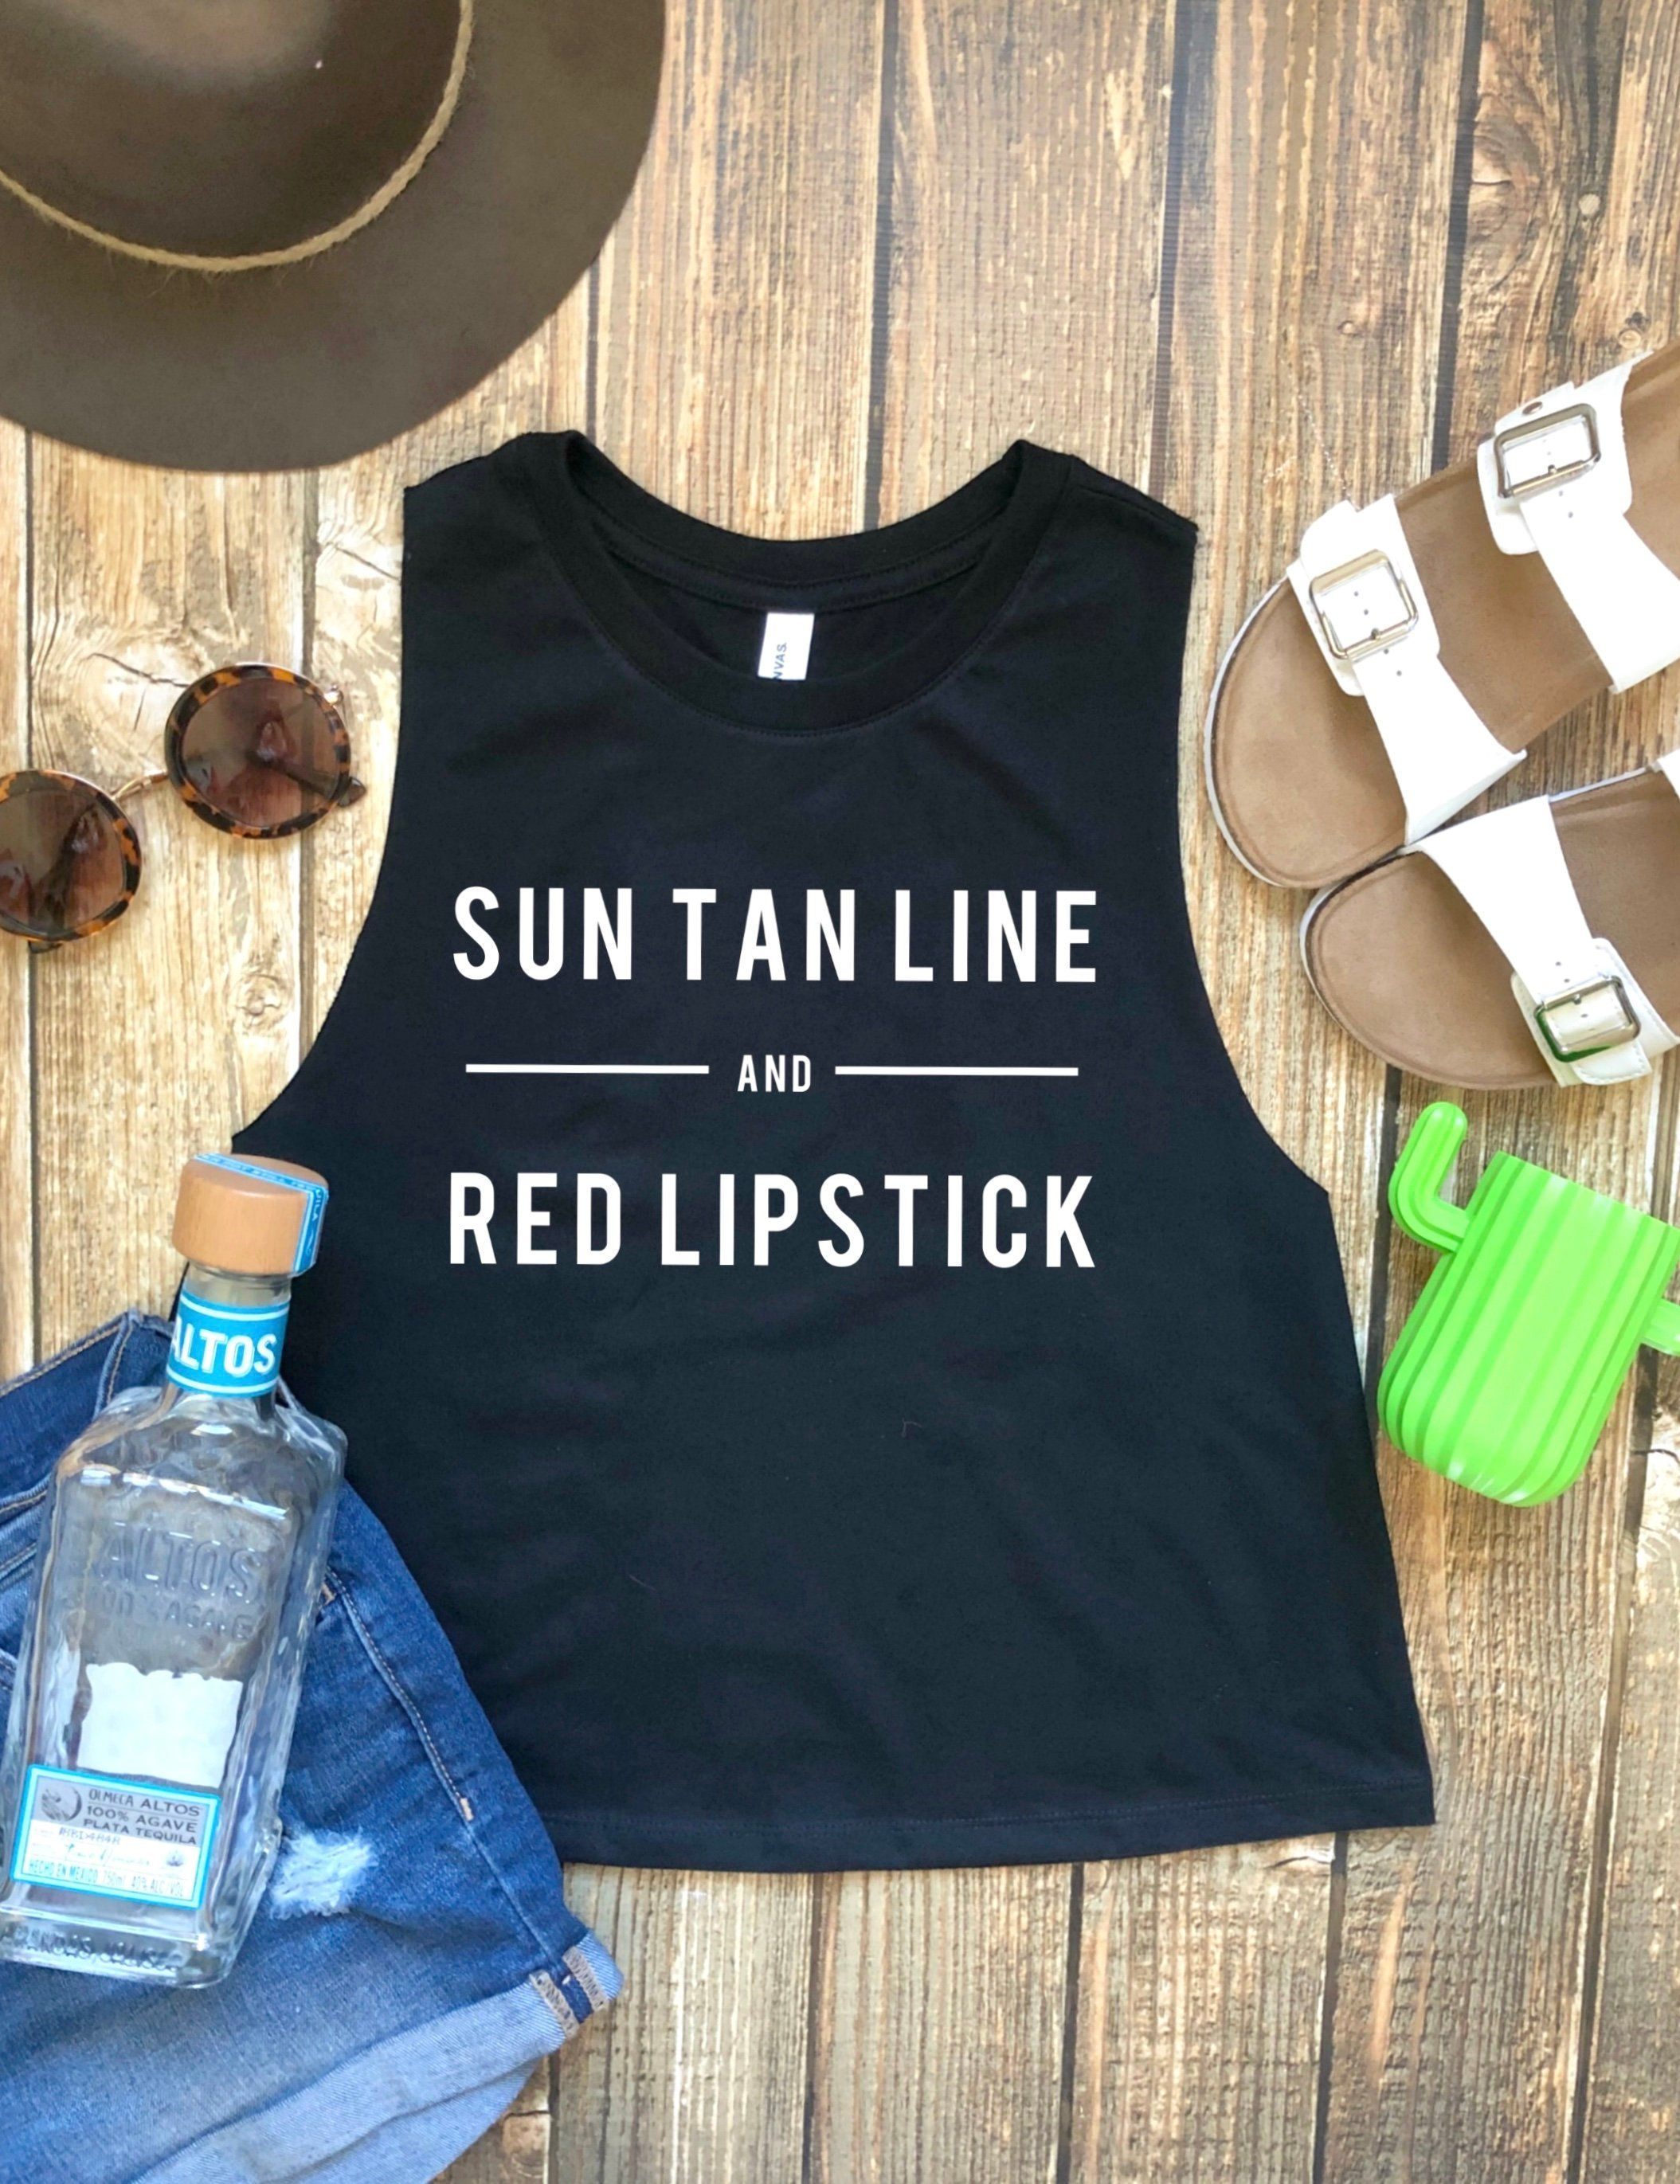 Sun Tan Line and Red Lipstick Cropped Tank, Country Music